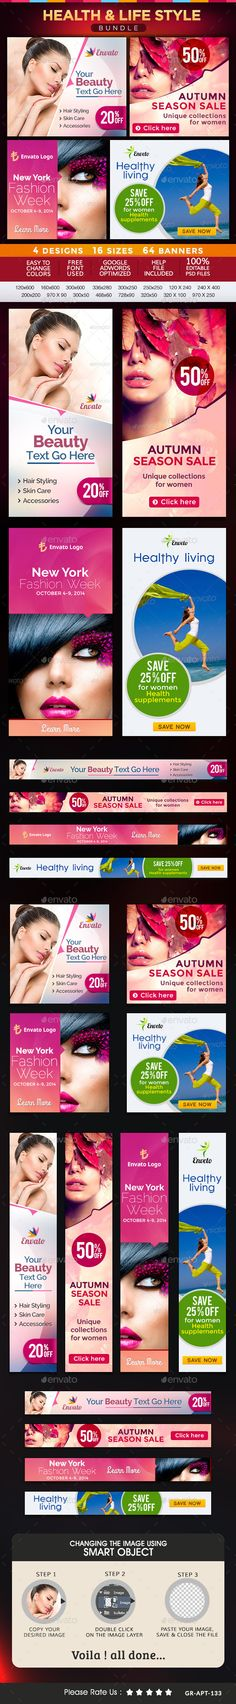 Health & Lifestyle Banners Bundle - 4 Sets Template PSD | Buy and Download: http://graphicriver.net/item/health-lifestyle-banners-bundle-4-sets/9197907?WT.oss_phrase=&WT.oss_rank=2&WT.z_author=doto&WT.ac=search_thumb&ref=ksioks